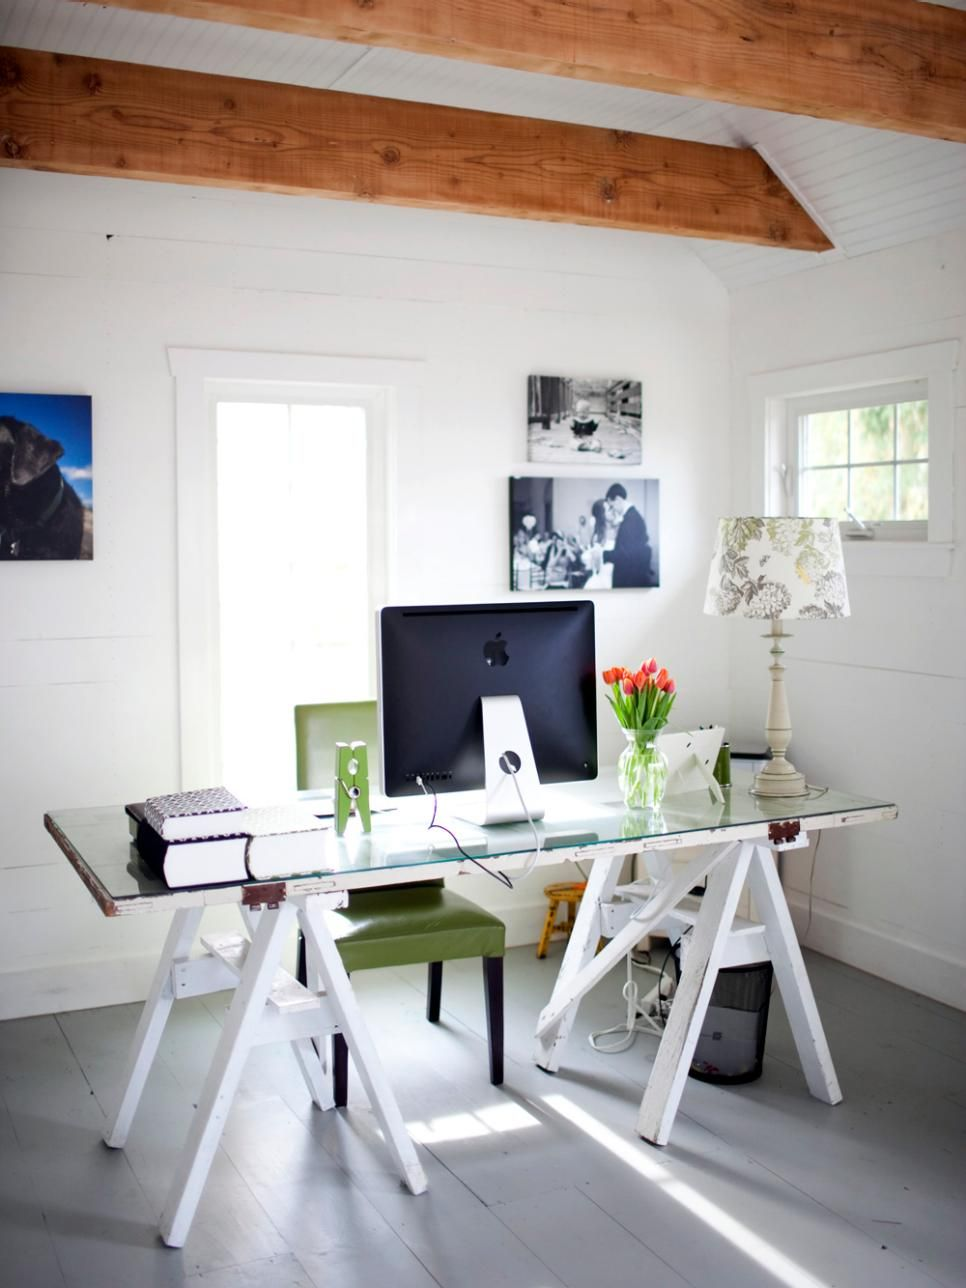 Clever Uses For Everyday Items In The Home Office Pictures